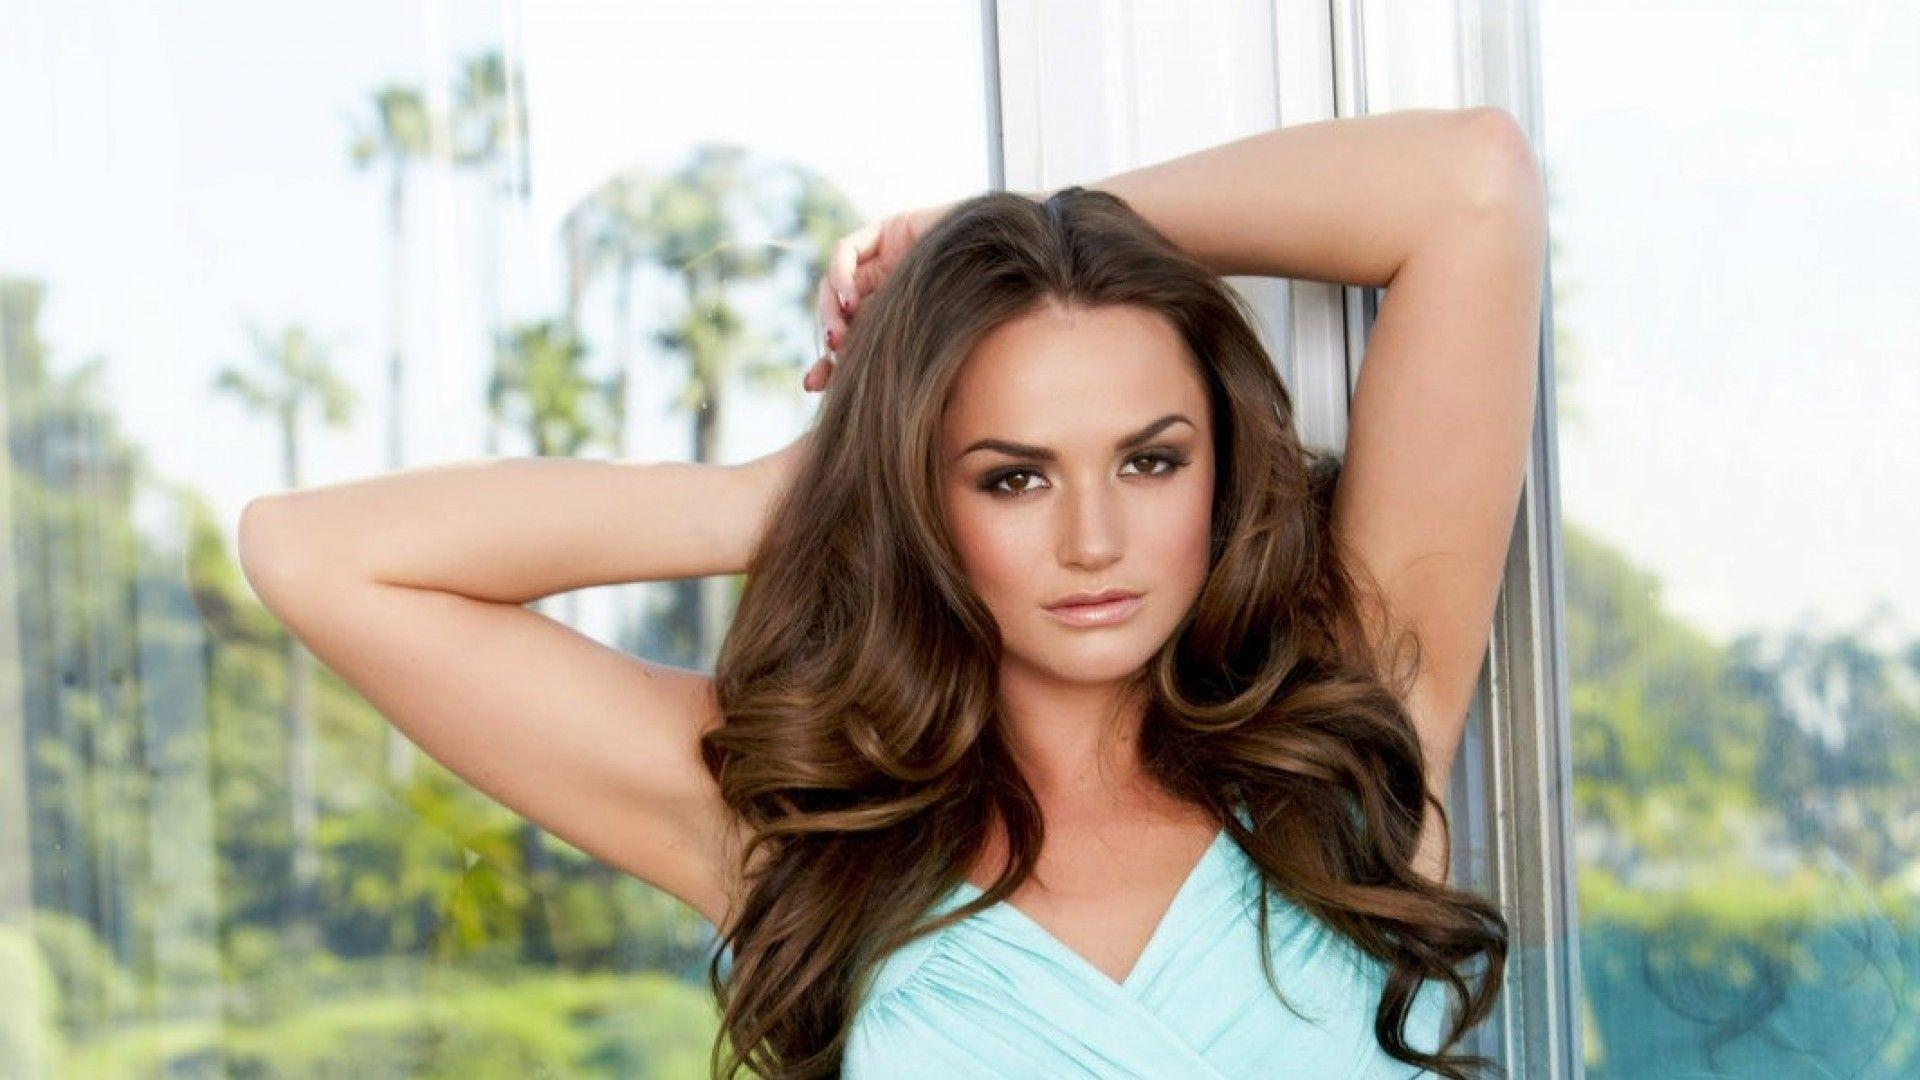 tori black iphone wallpaper